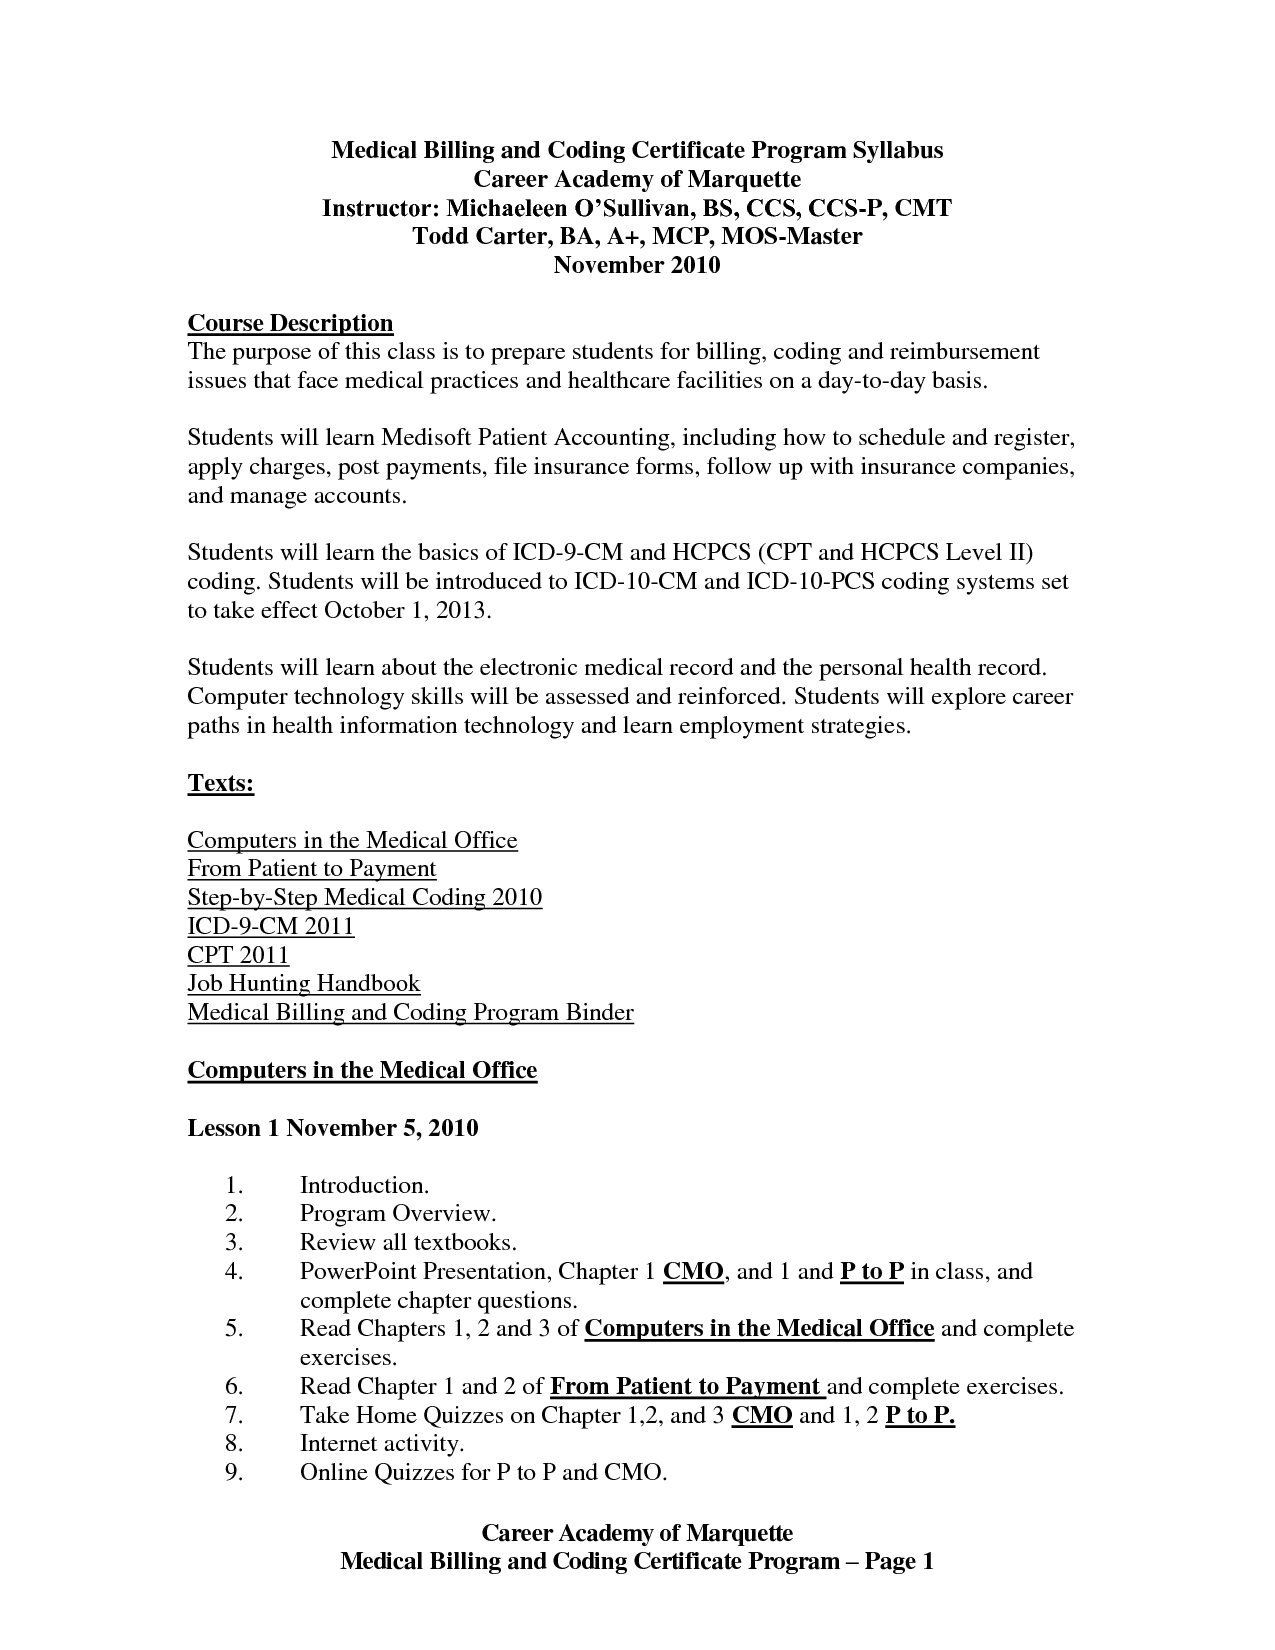 Example of a medical billing and coding resume and example of medical billing and coding test